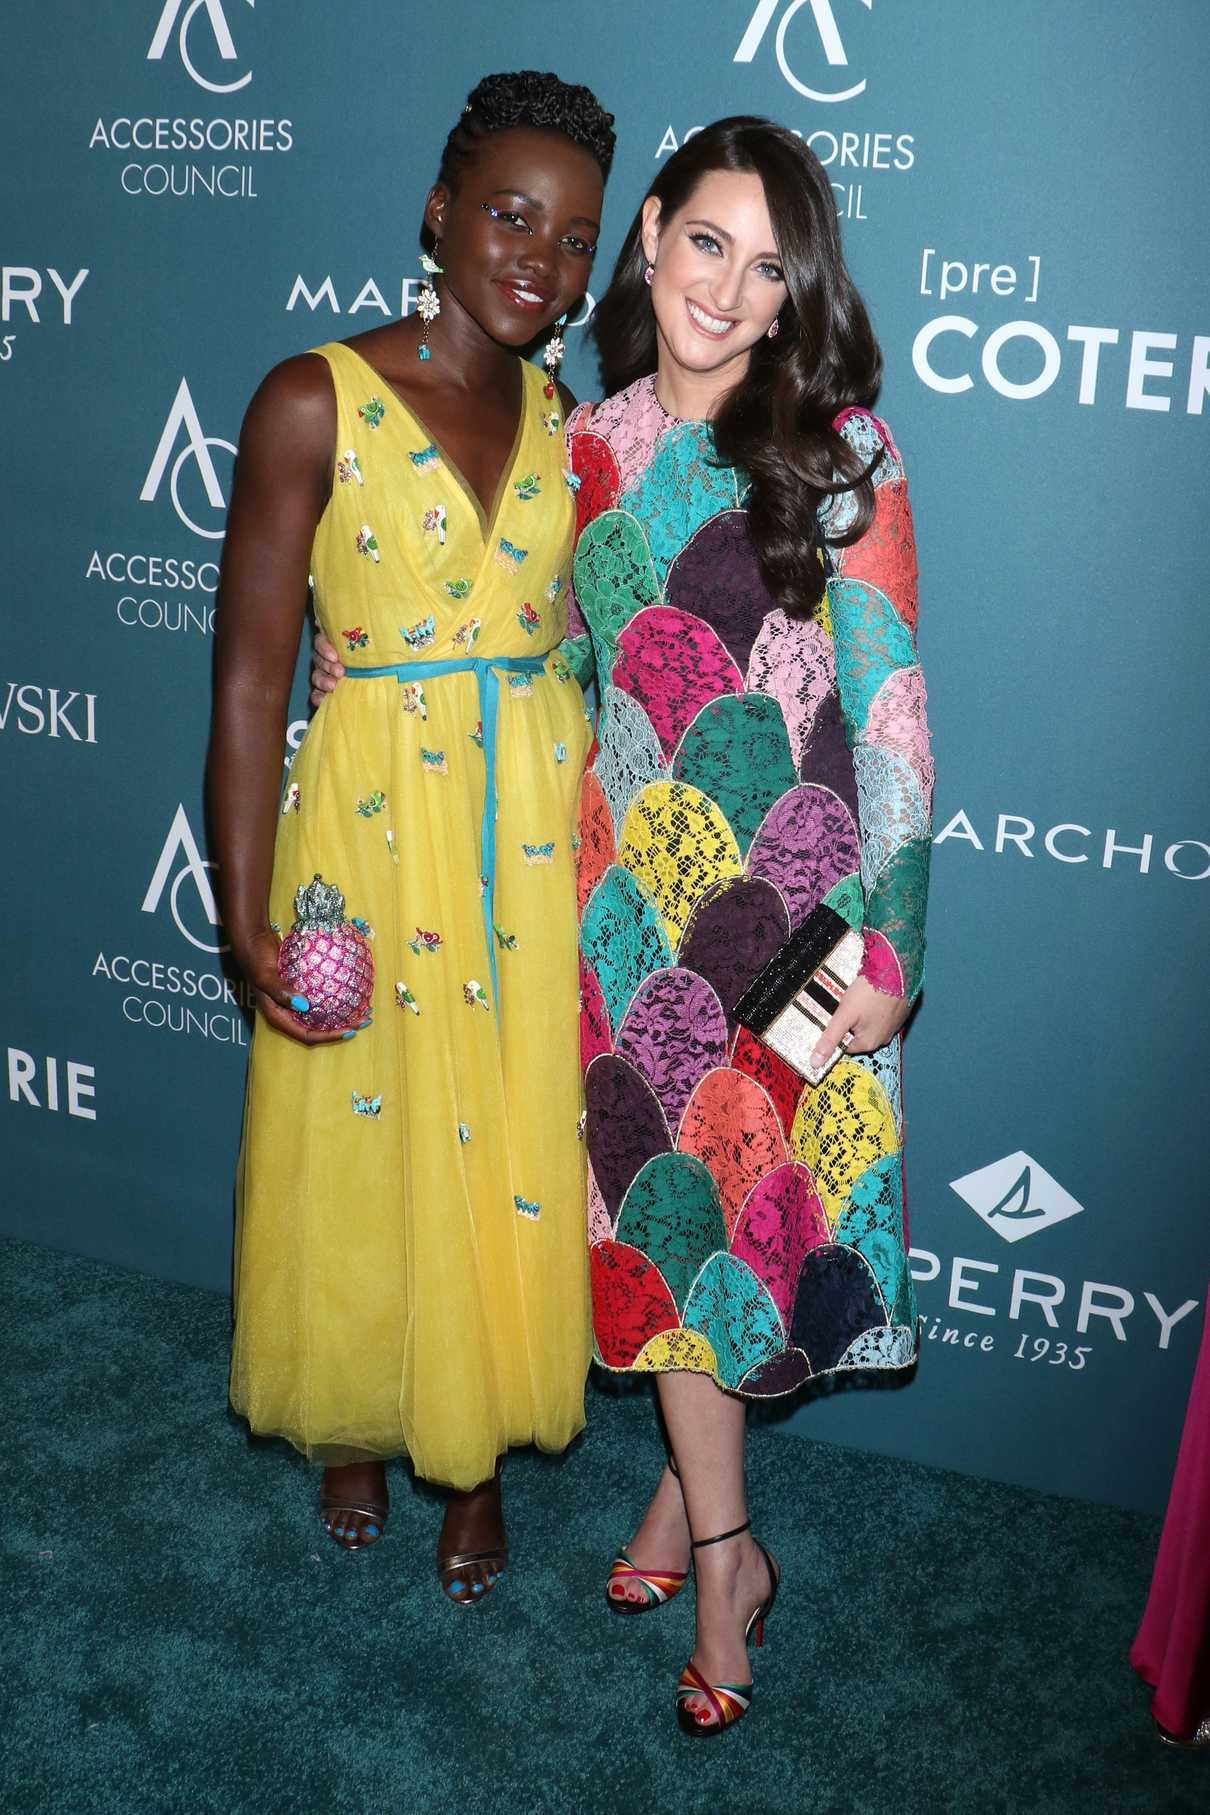 Lupita Nyong'o Attends the 22nd Annual Ace Awards in New York City 06/11/2018-4